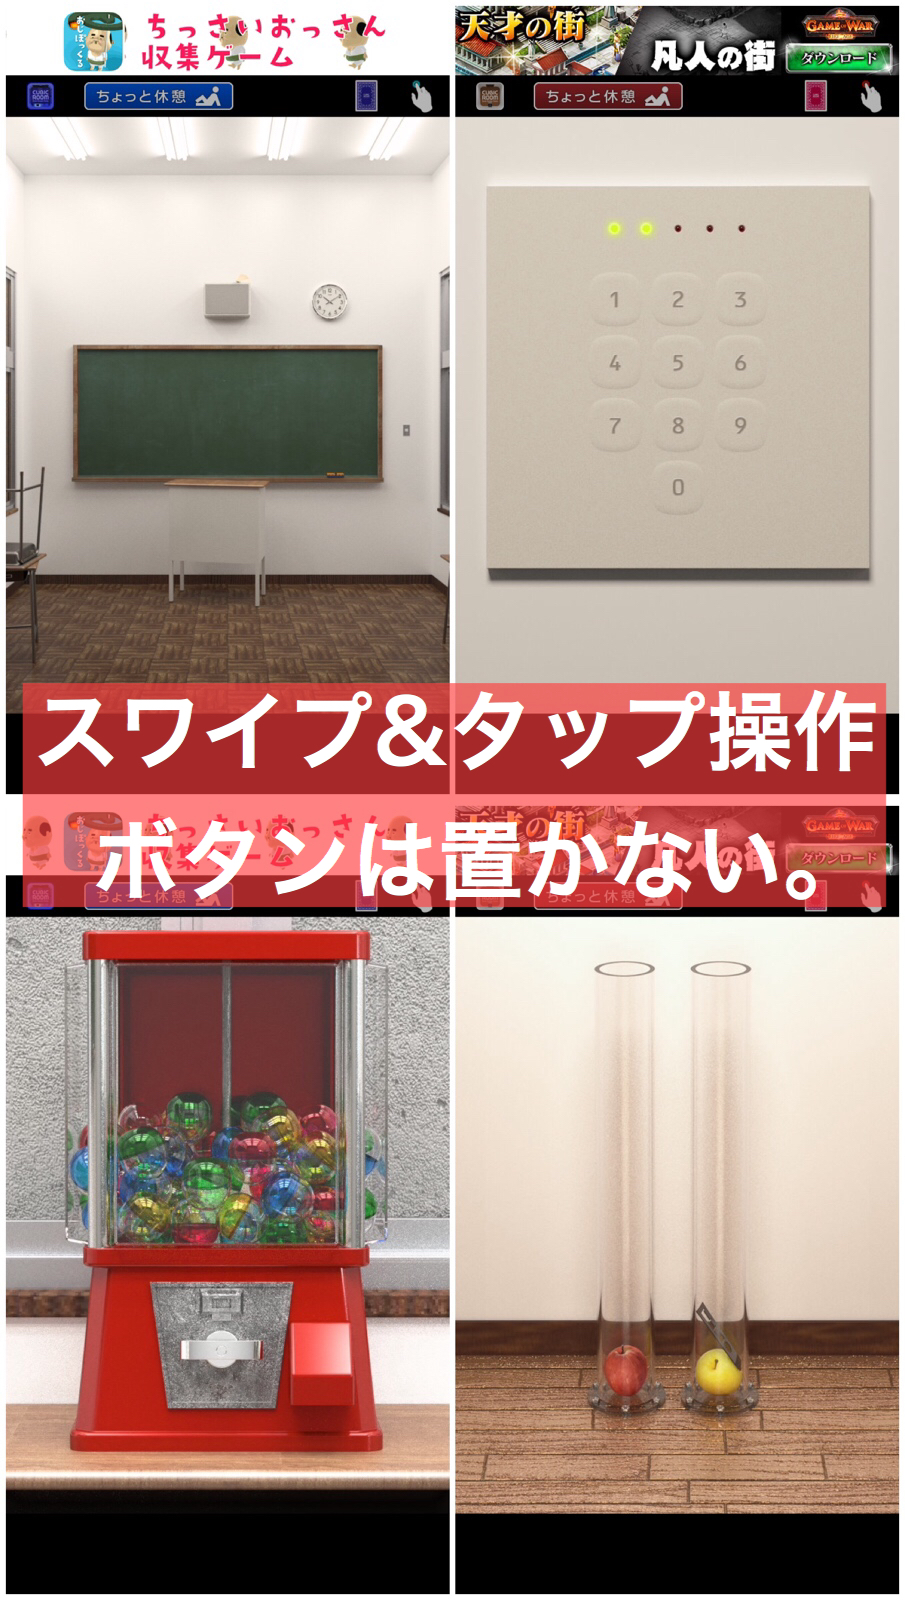 cubicroom_interface